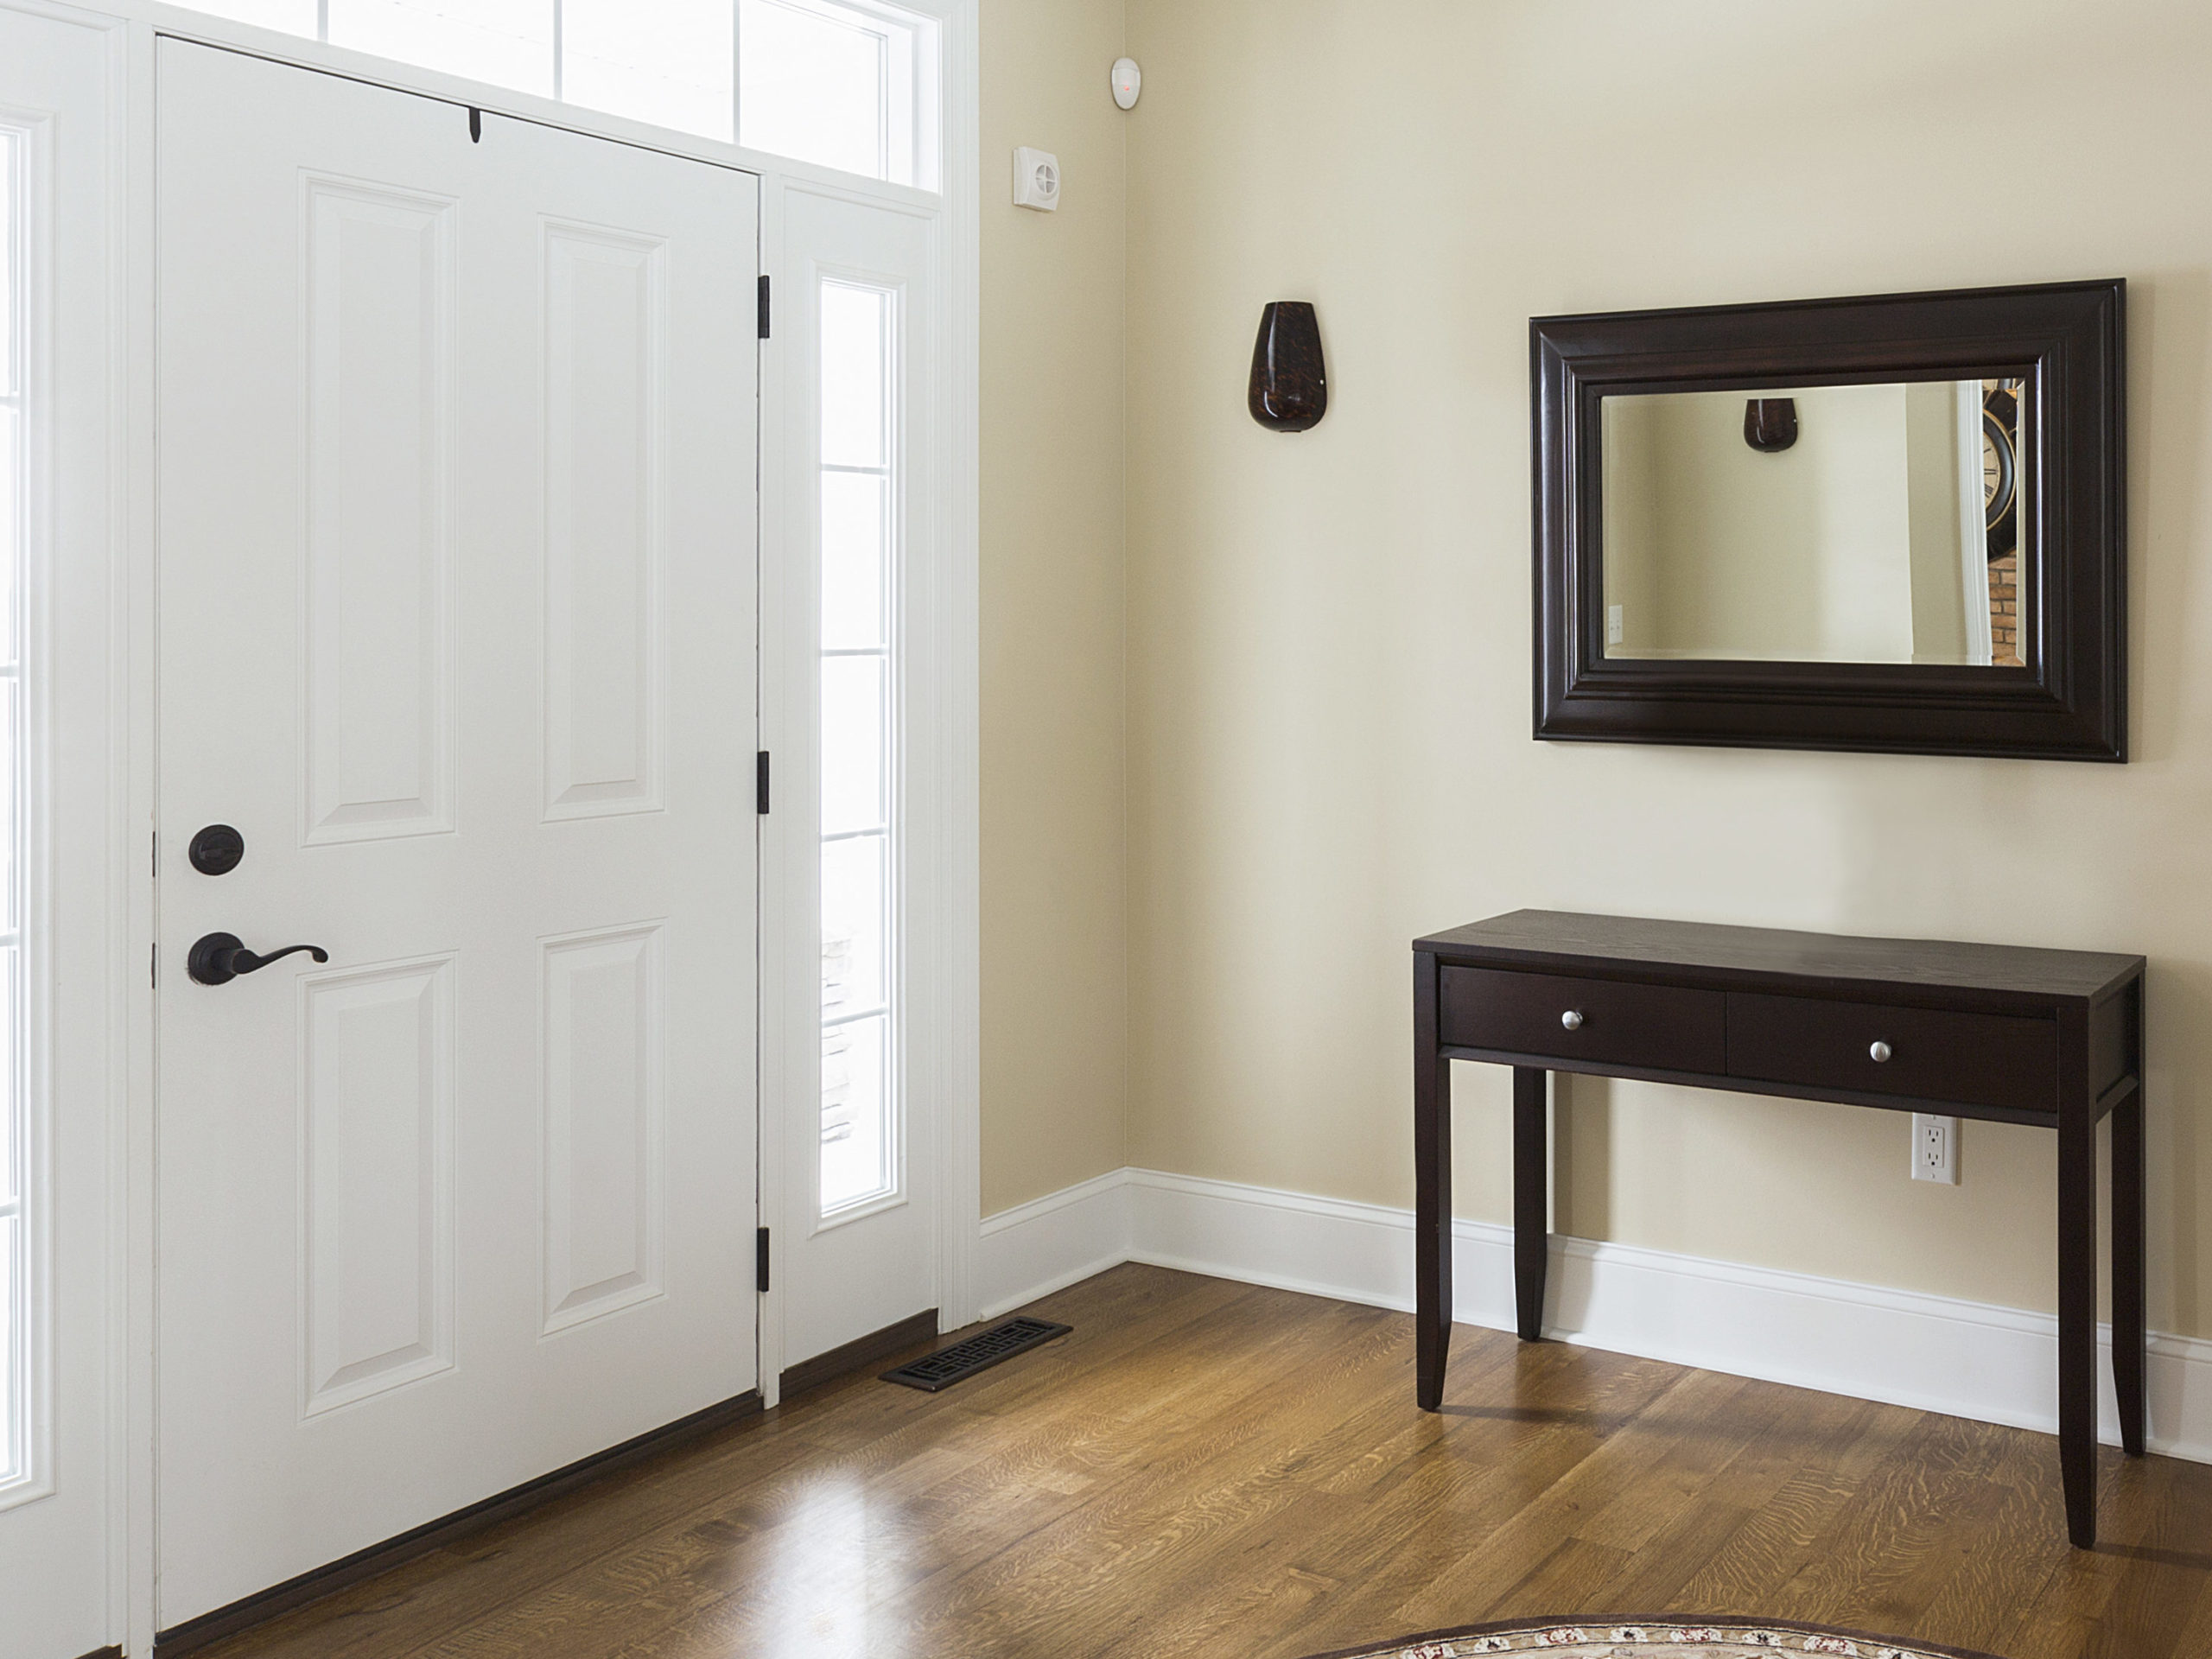 Table and mirror in modern entryway